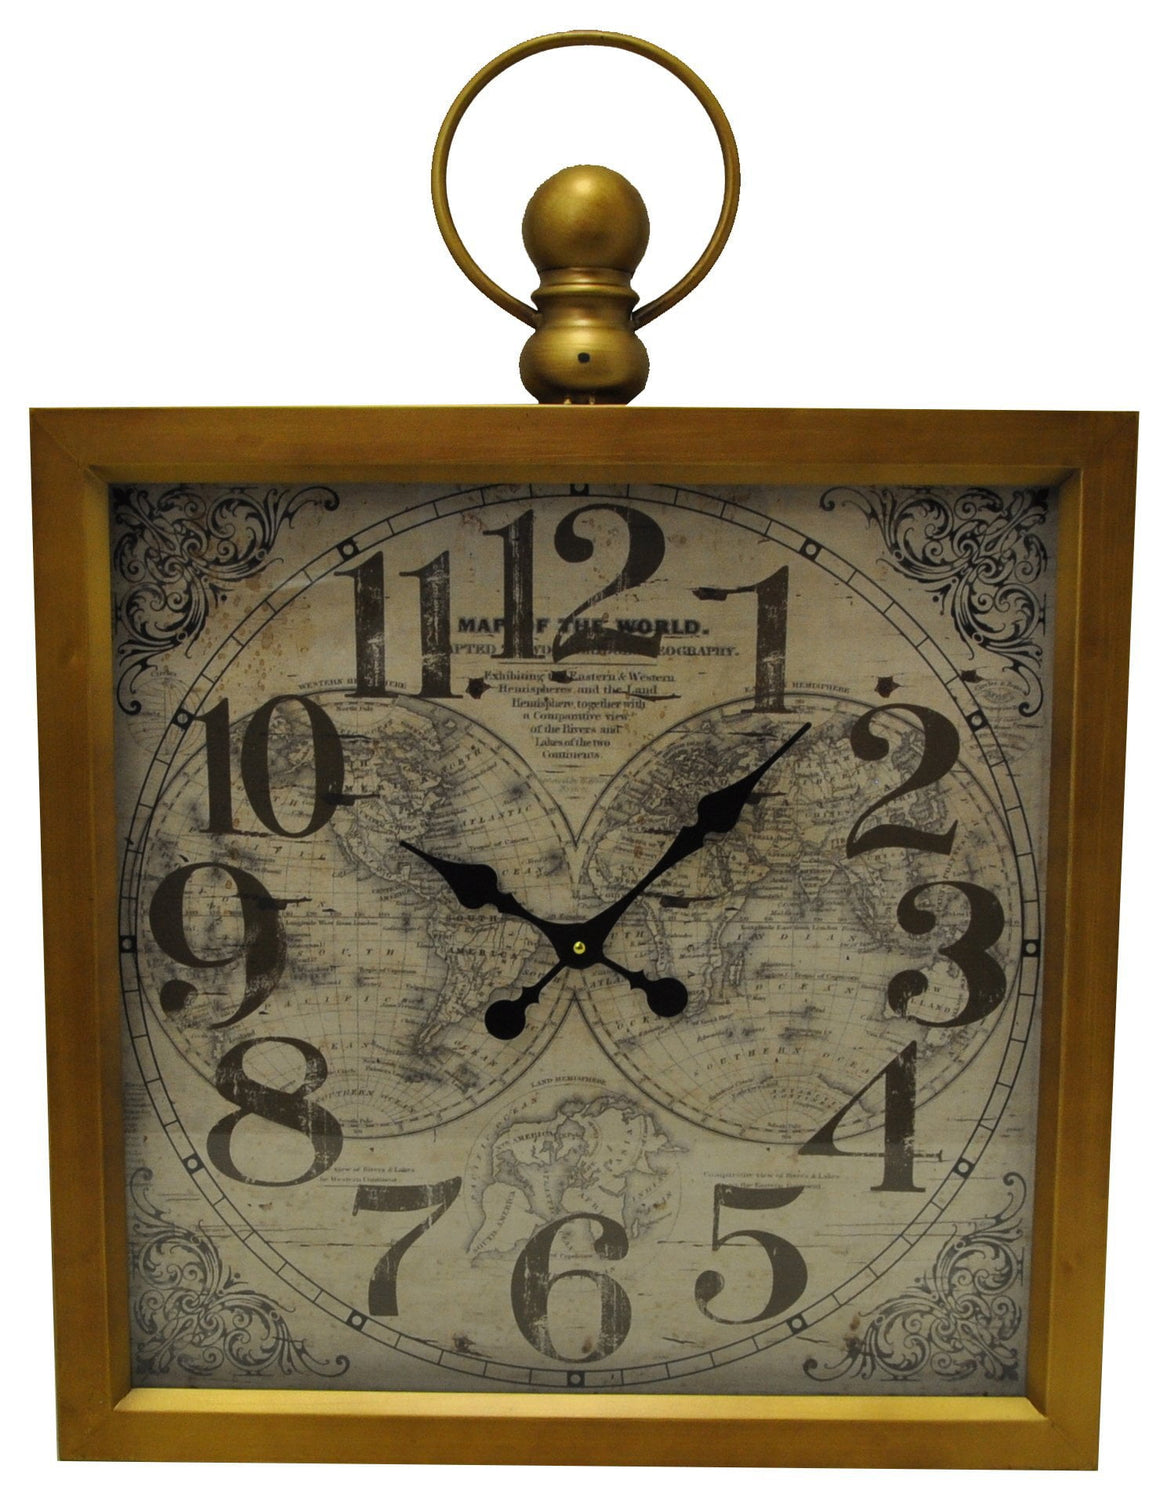 Antique Square Clock - Clocks - themayacompany